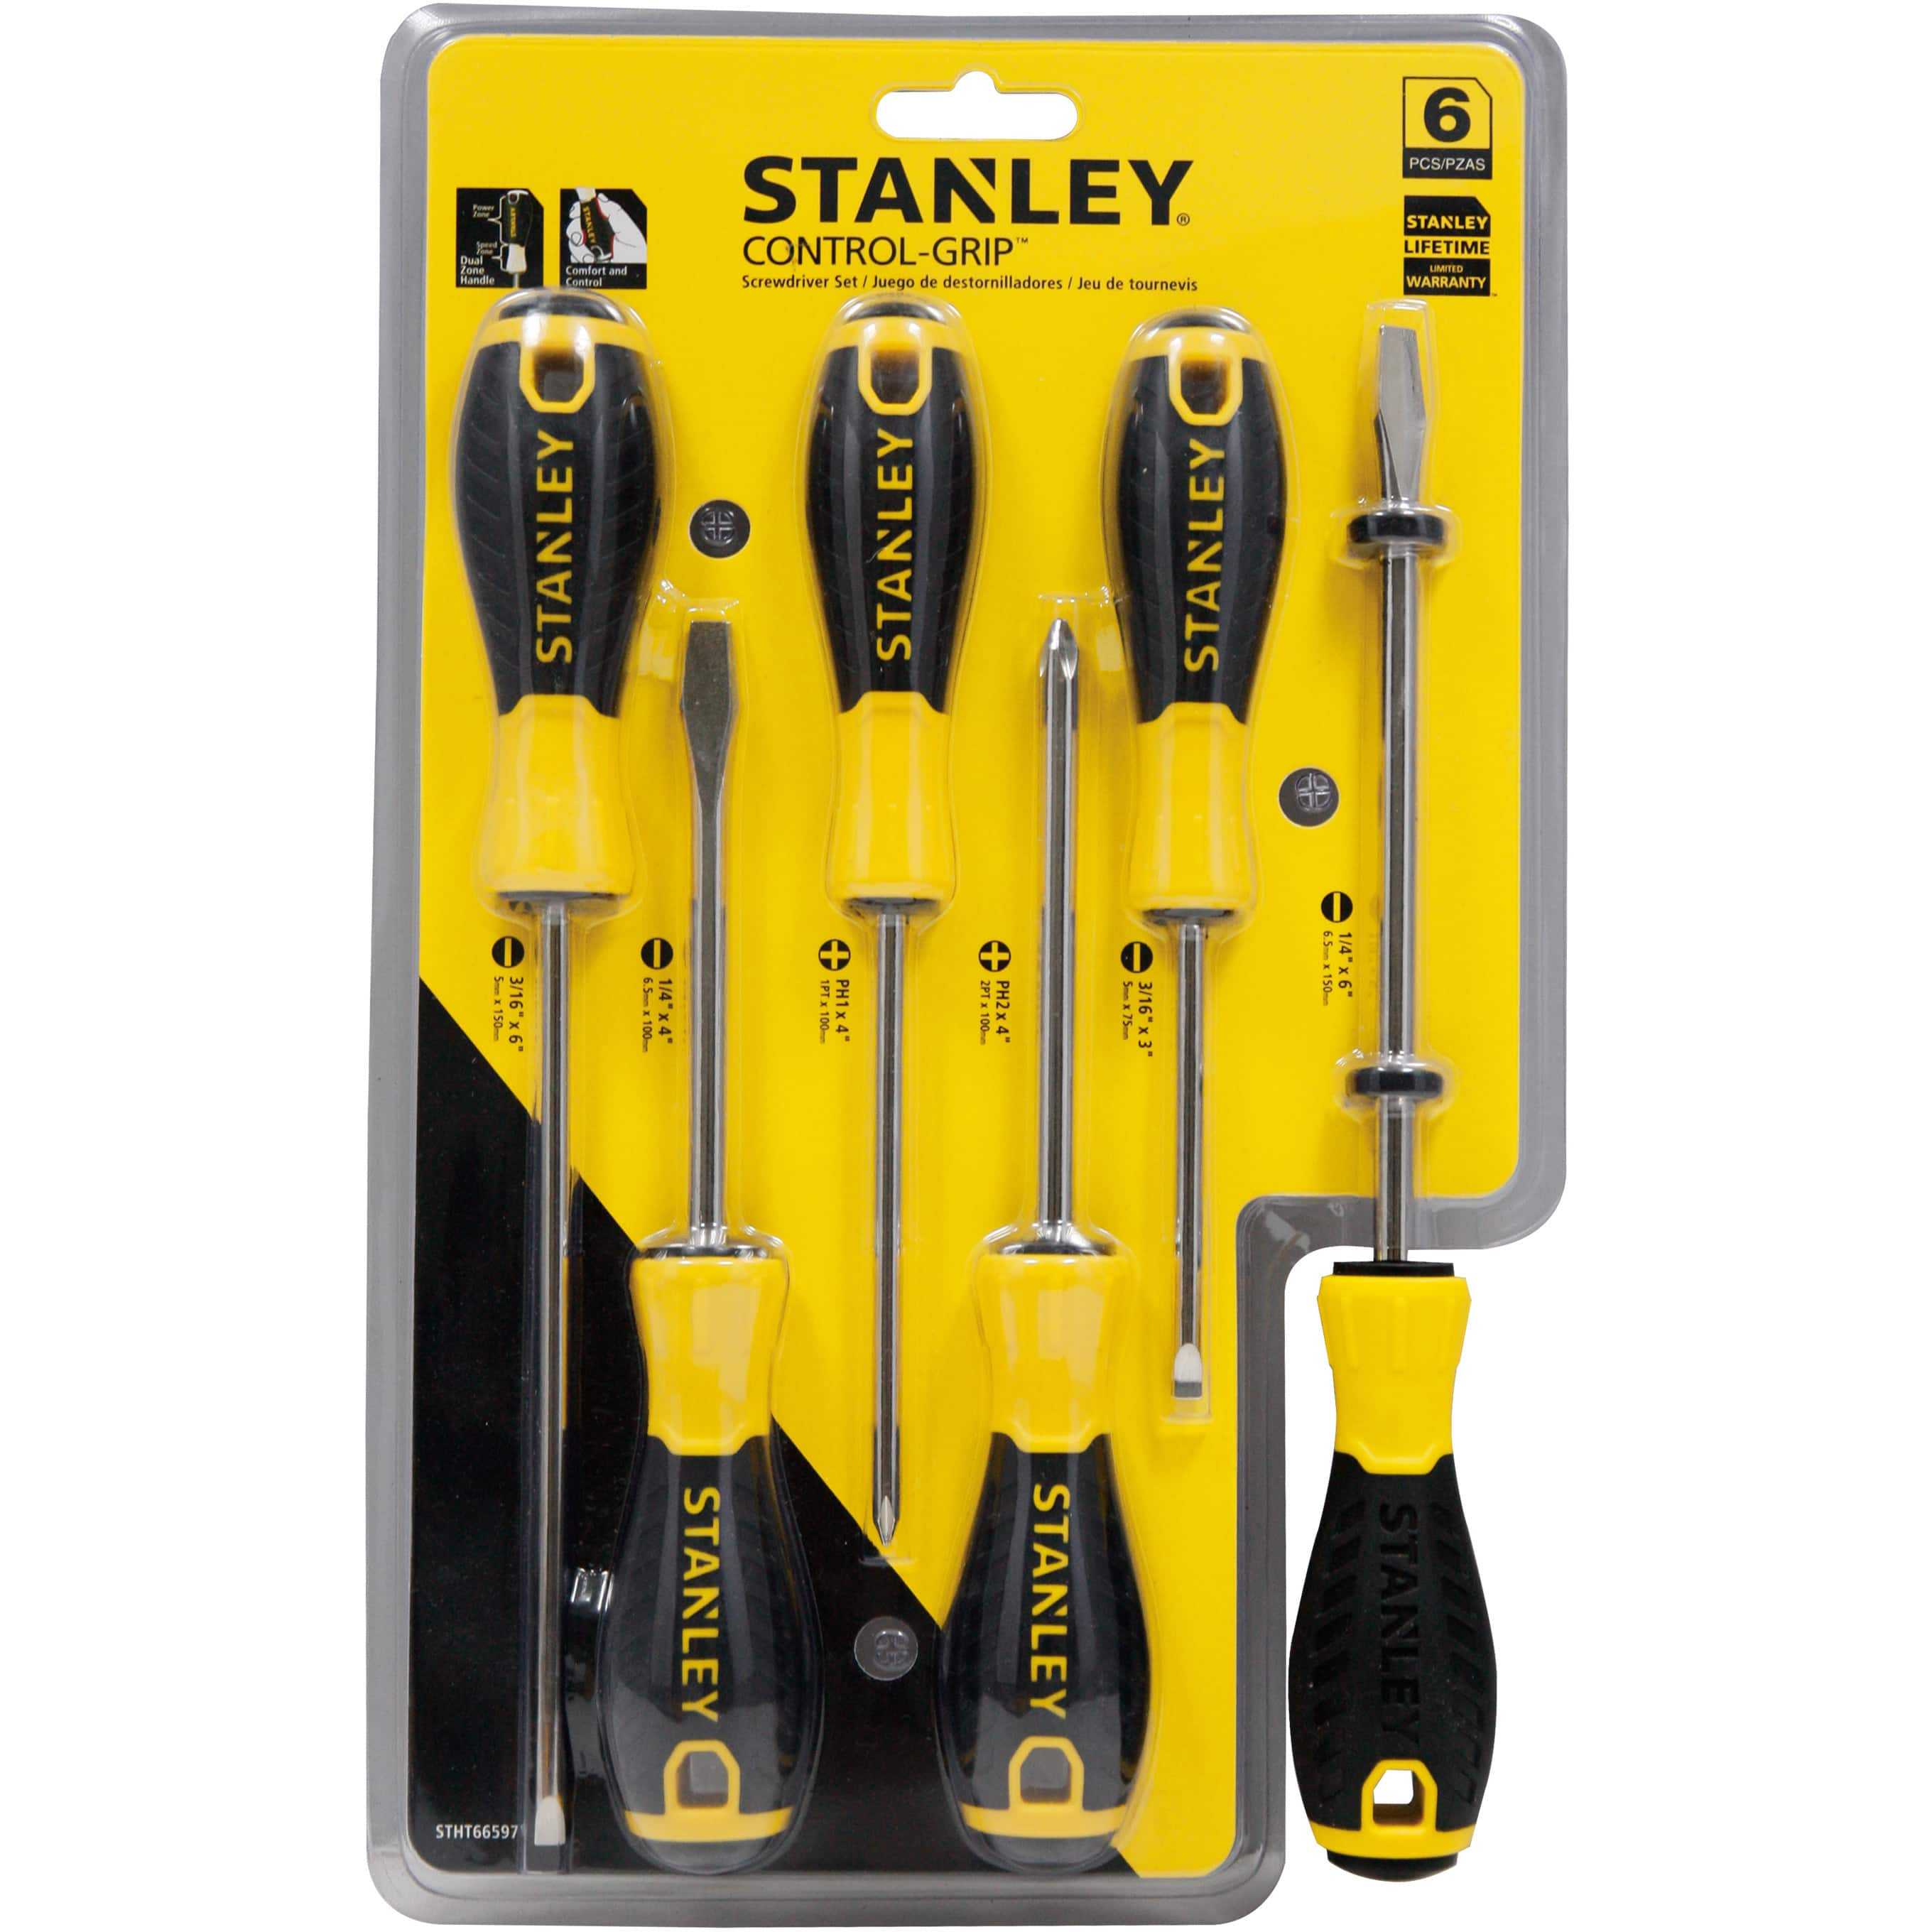 Walmart In Store Only Stanley Tools on Clearance - YMMV $5